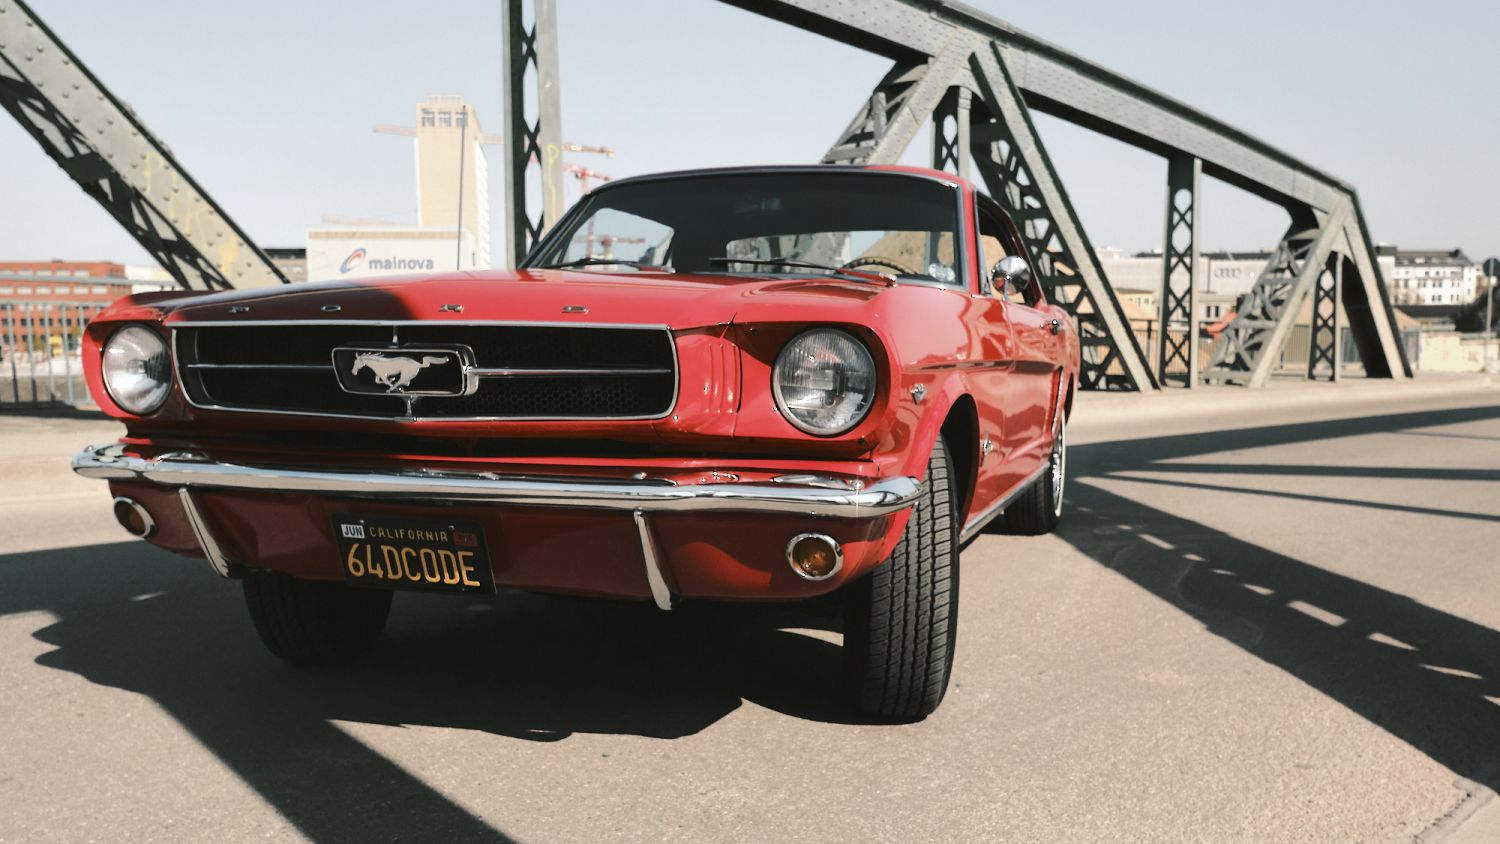 Cover picture of product Mustang 64 - Brücke, Fotoprint 60 x 40 cm